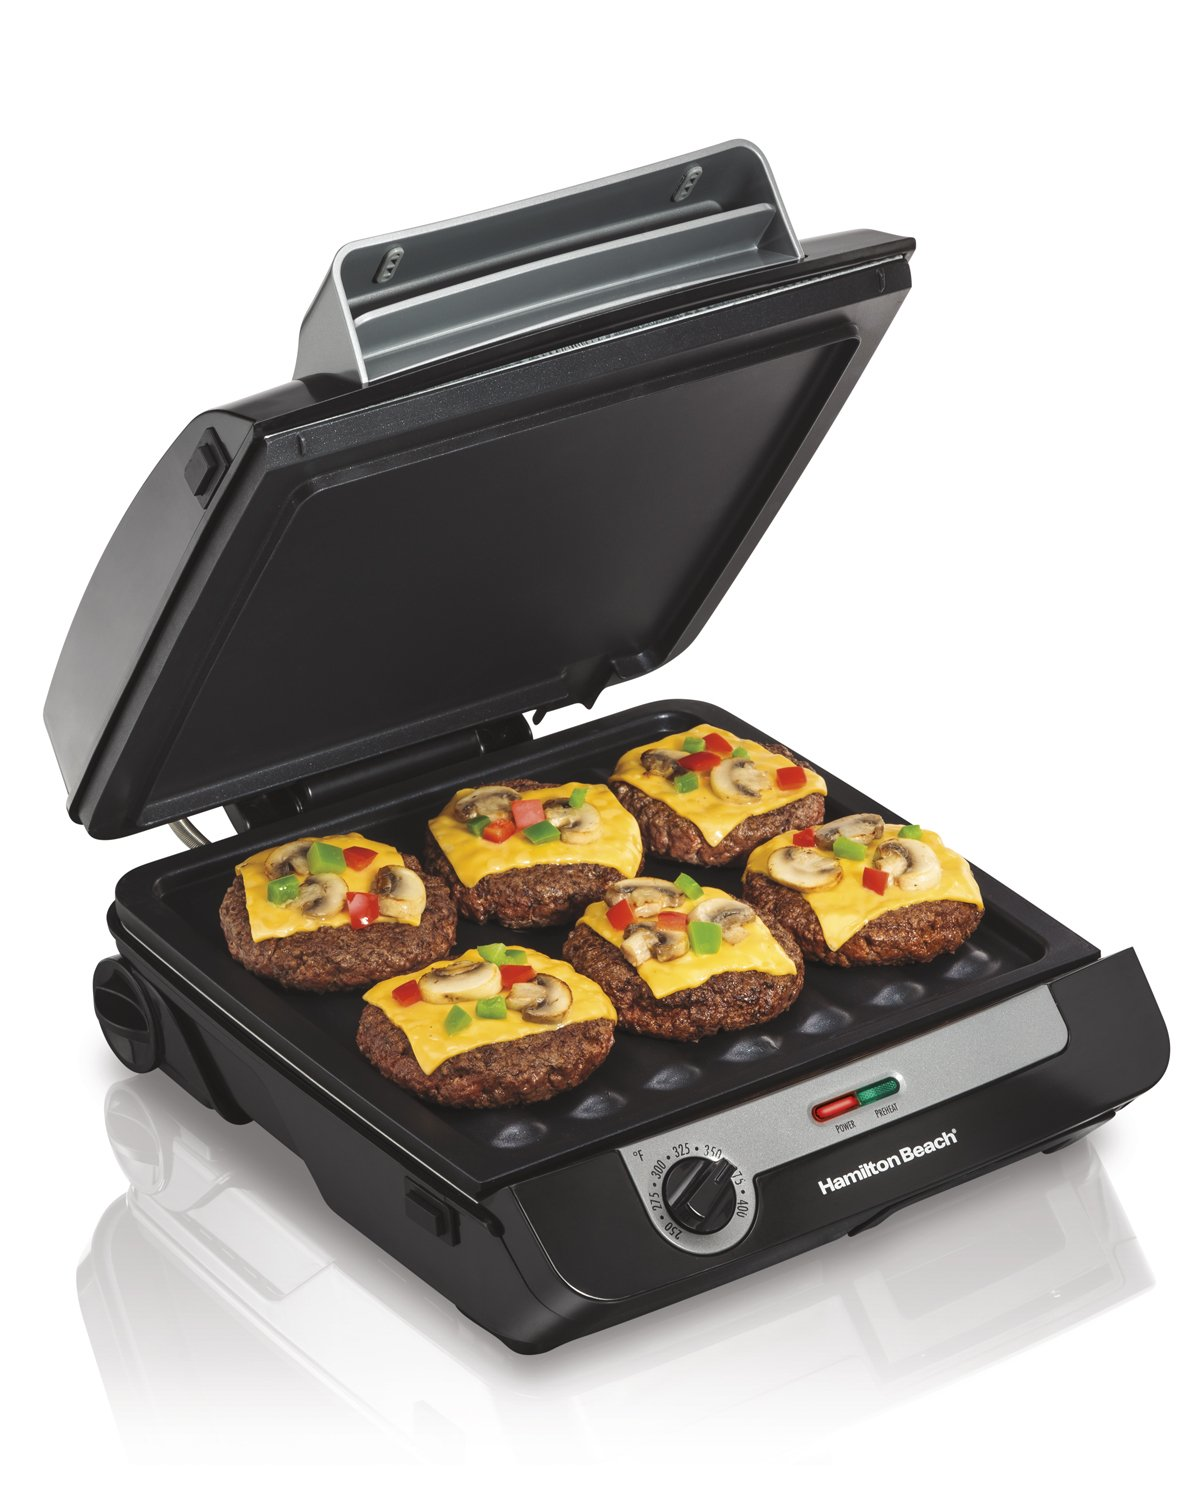 Hamiton Beach (25600) Electric Smokeless Indoor Grill & Electric Griddle Combo with Bacon Cooker & Removable Plates